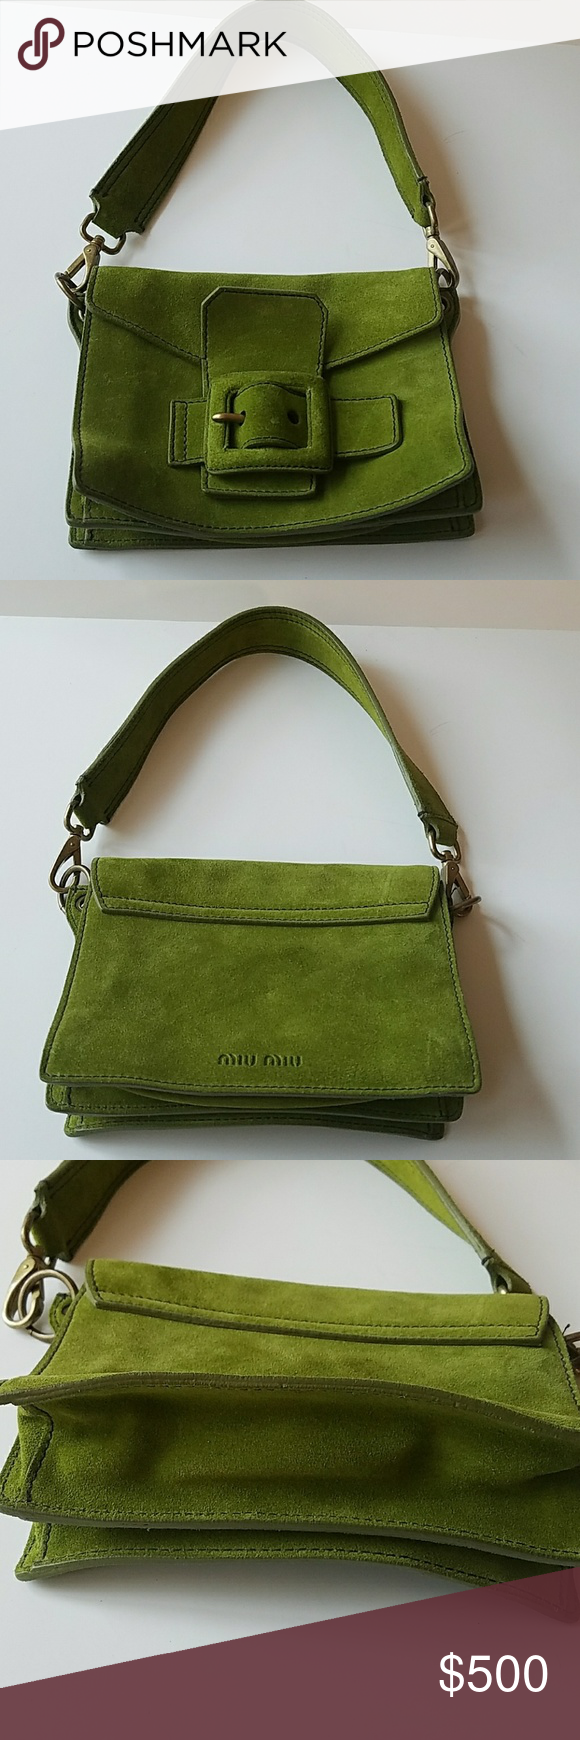 397dd8592c30 Miu Miu Olive Green Suede Bag Gorgeous made in Italy Runway fashion bag.  Olive green soft suede. Miu Miu Bags Shoulder Bags